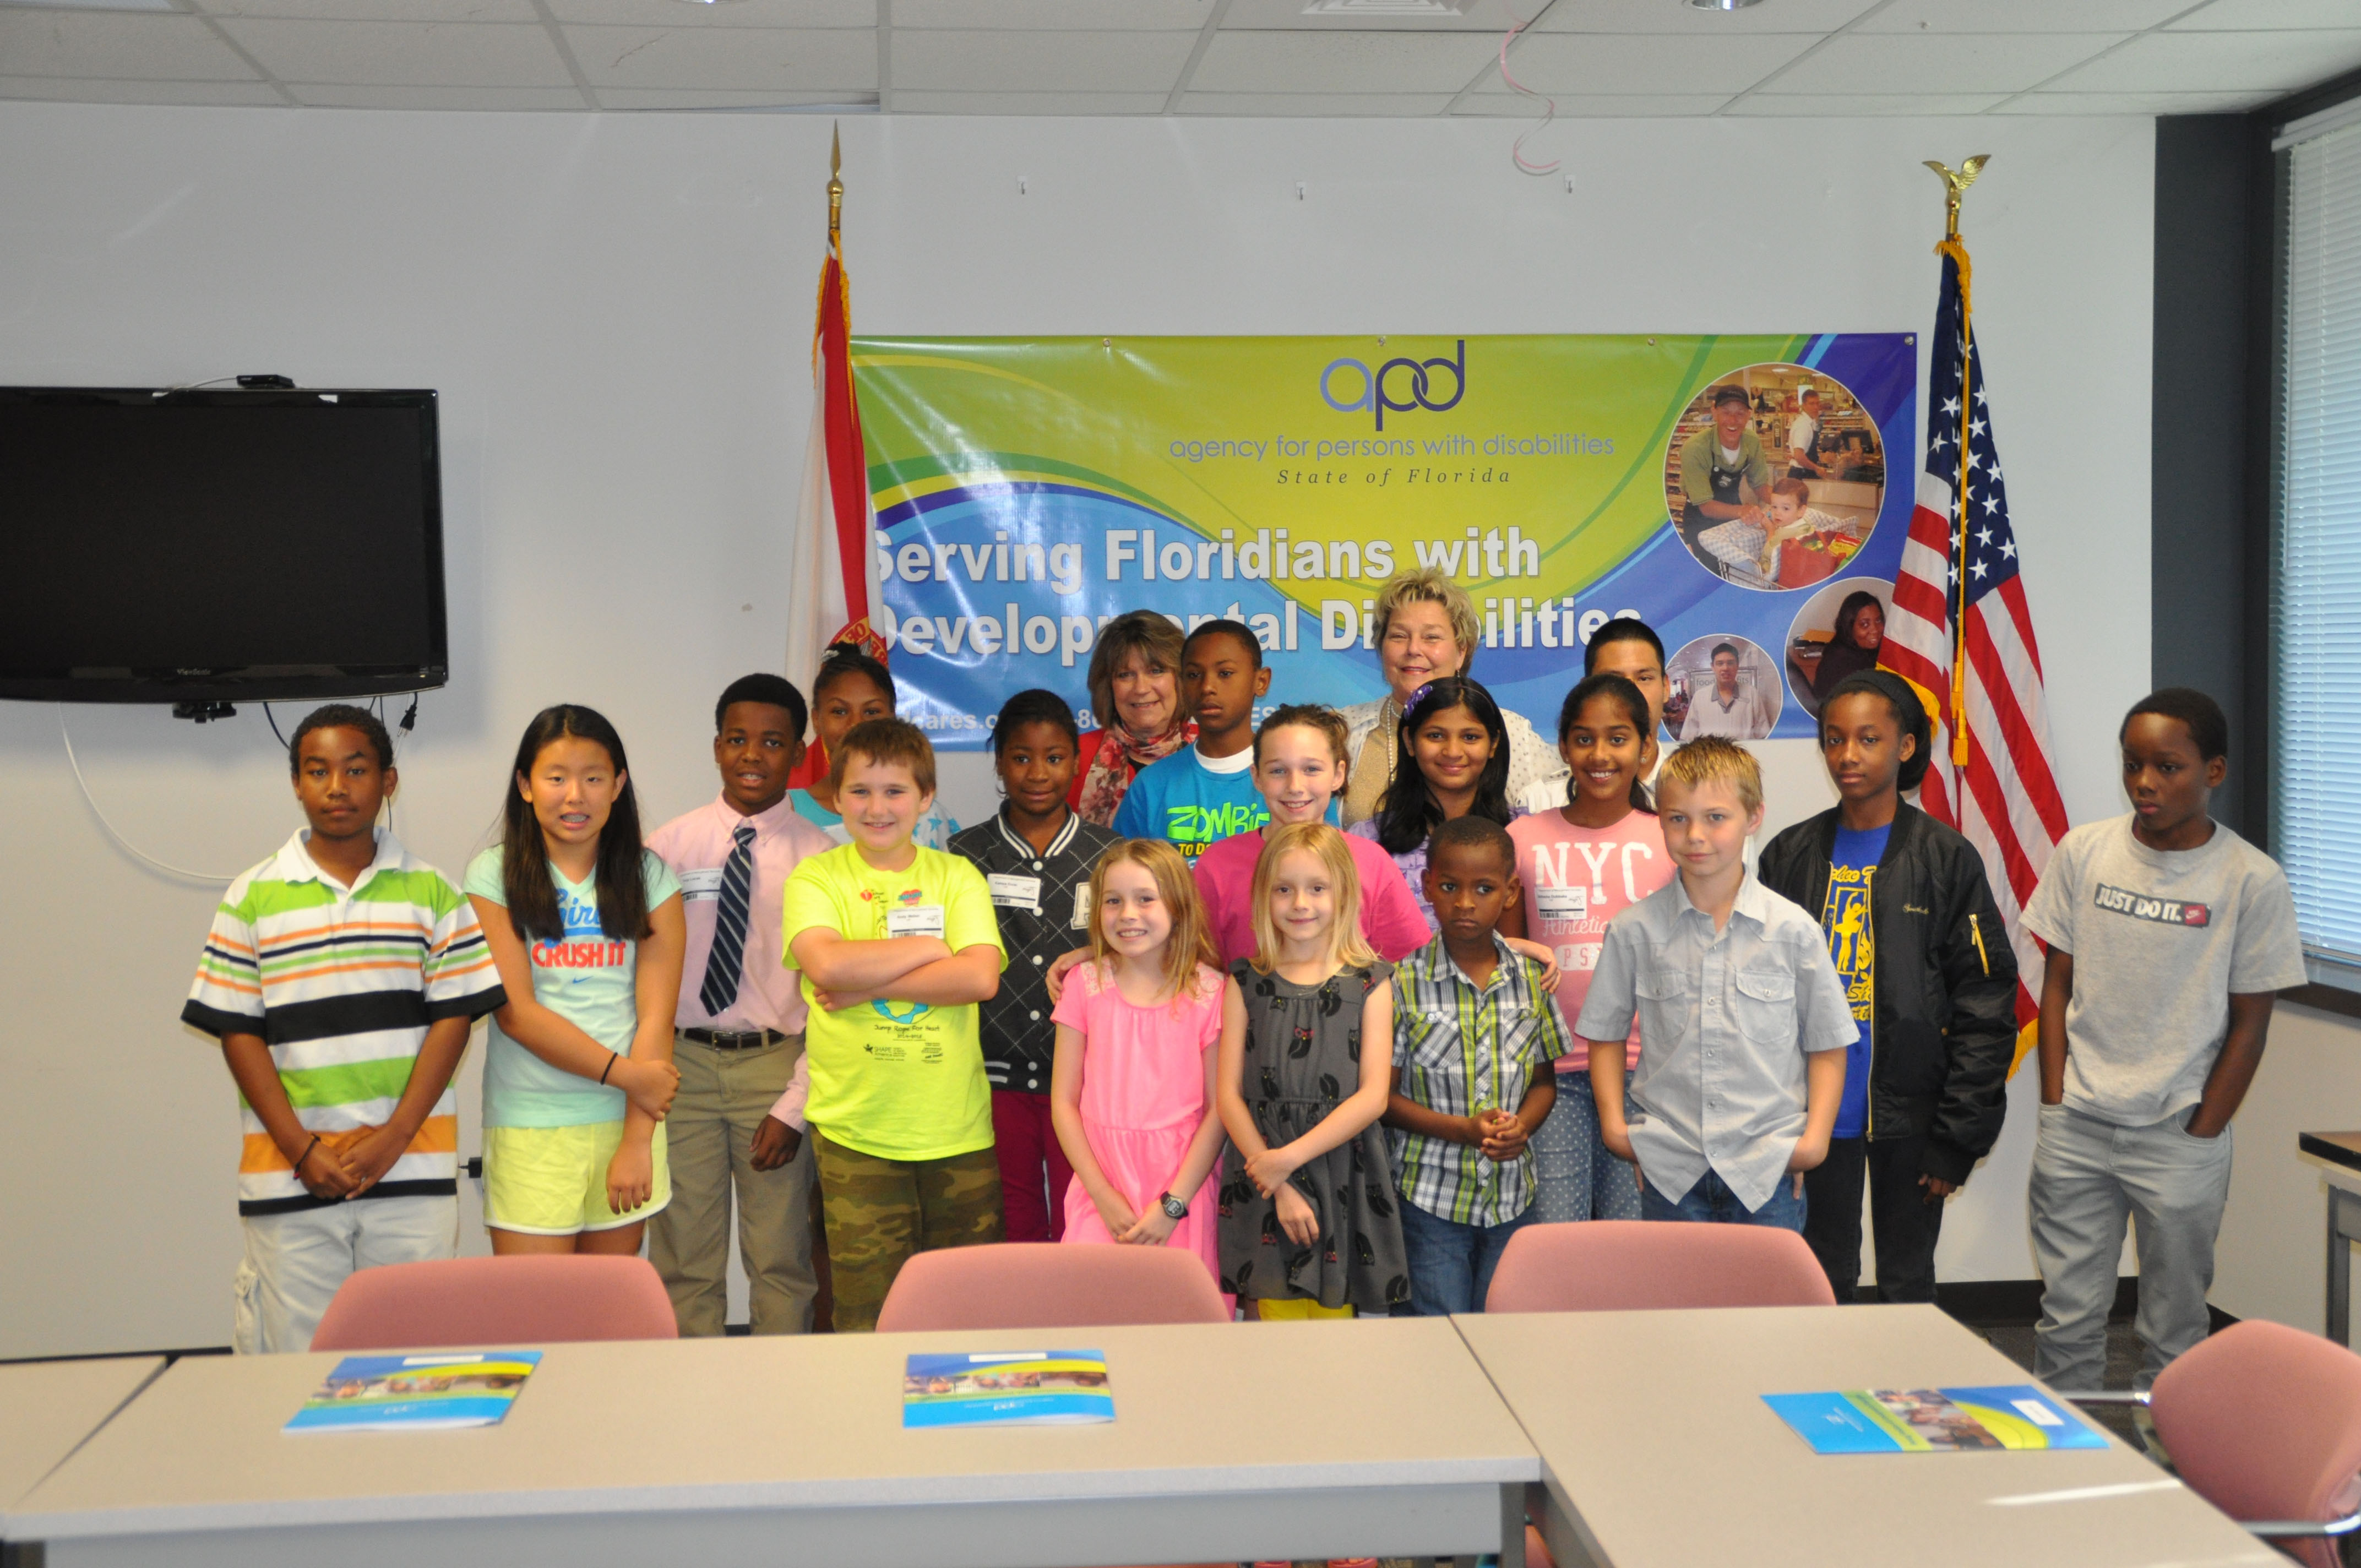 APD Chief of Staff Karen Hagan and Director Barbara Palmer, in back row, pose for a group photo with the agency's daughters and sons.